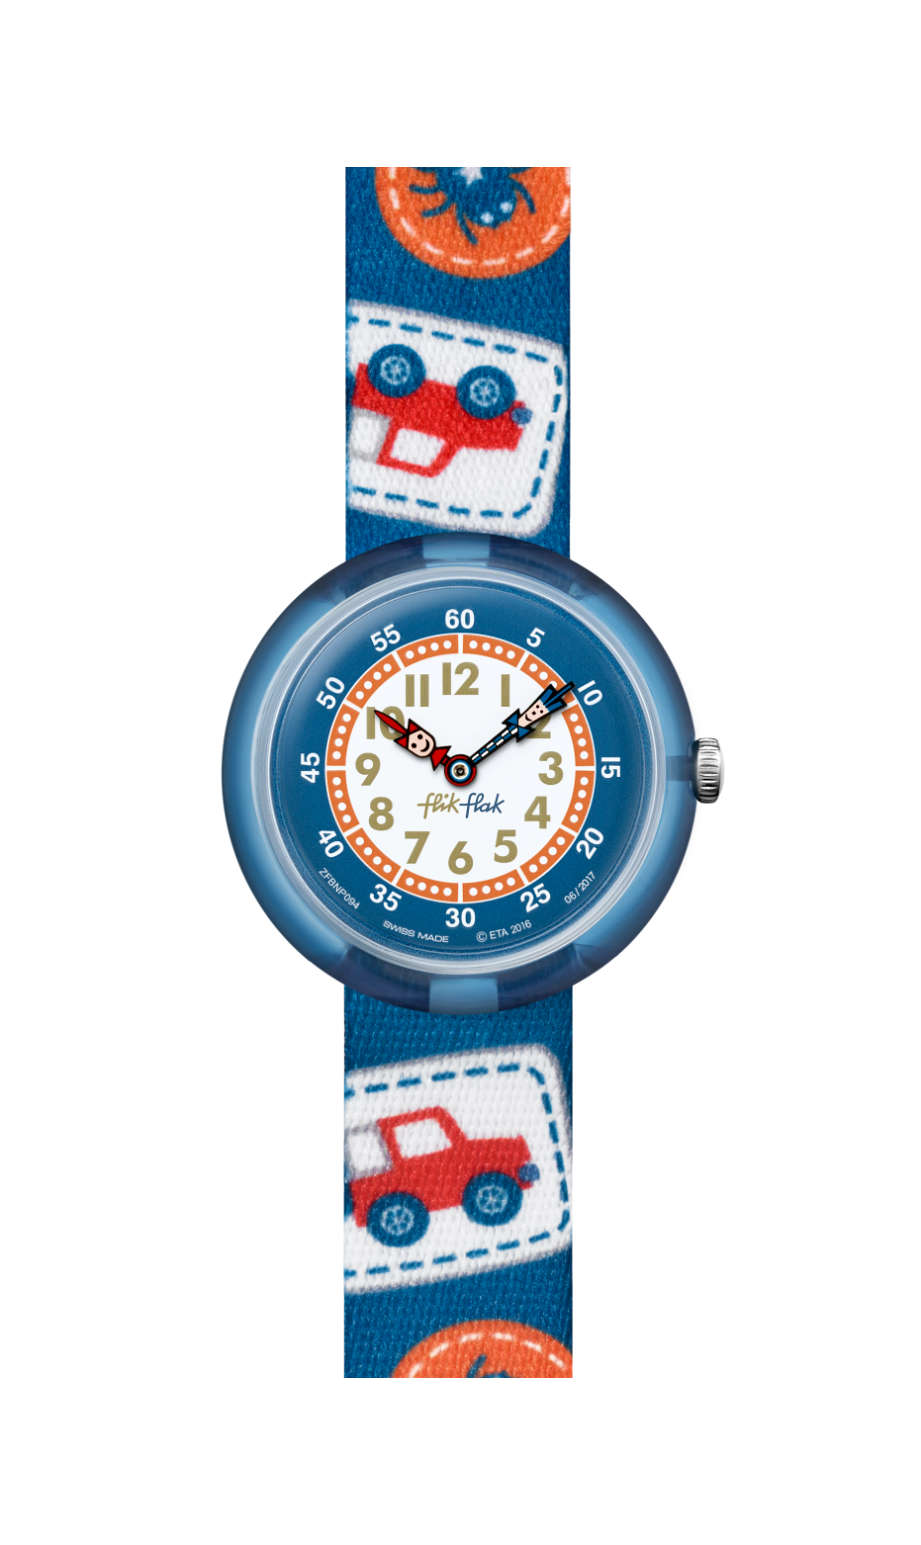 Swatch - CAMPING BADGE BLUE - 1